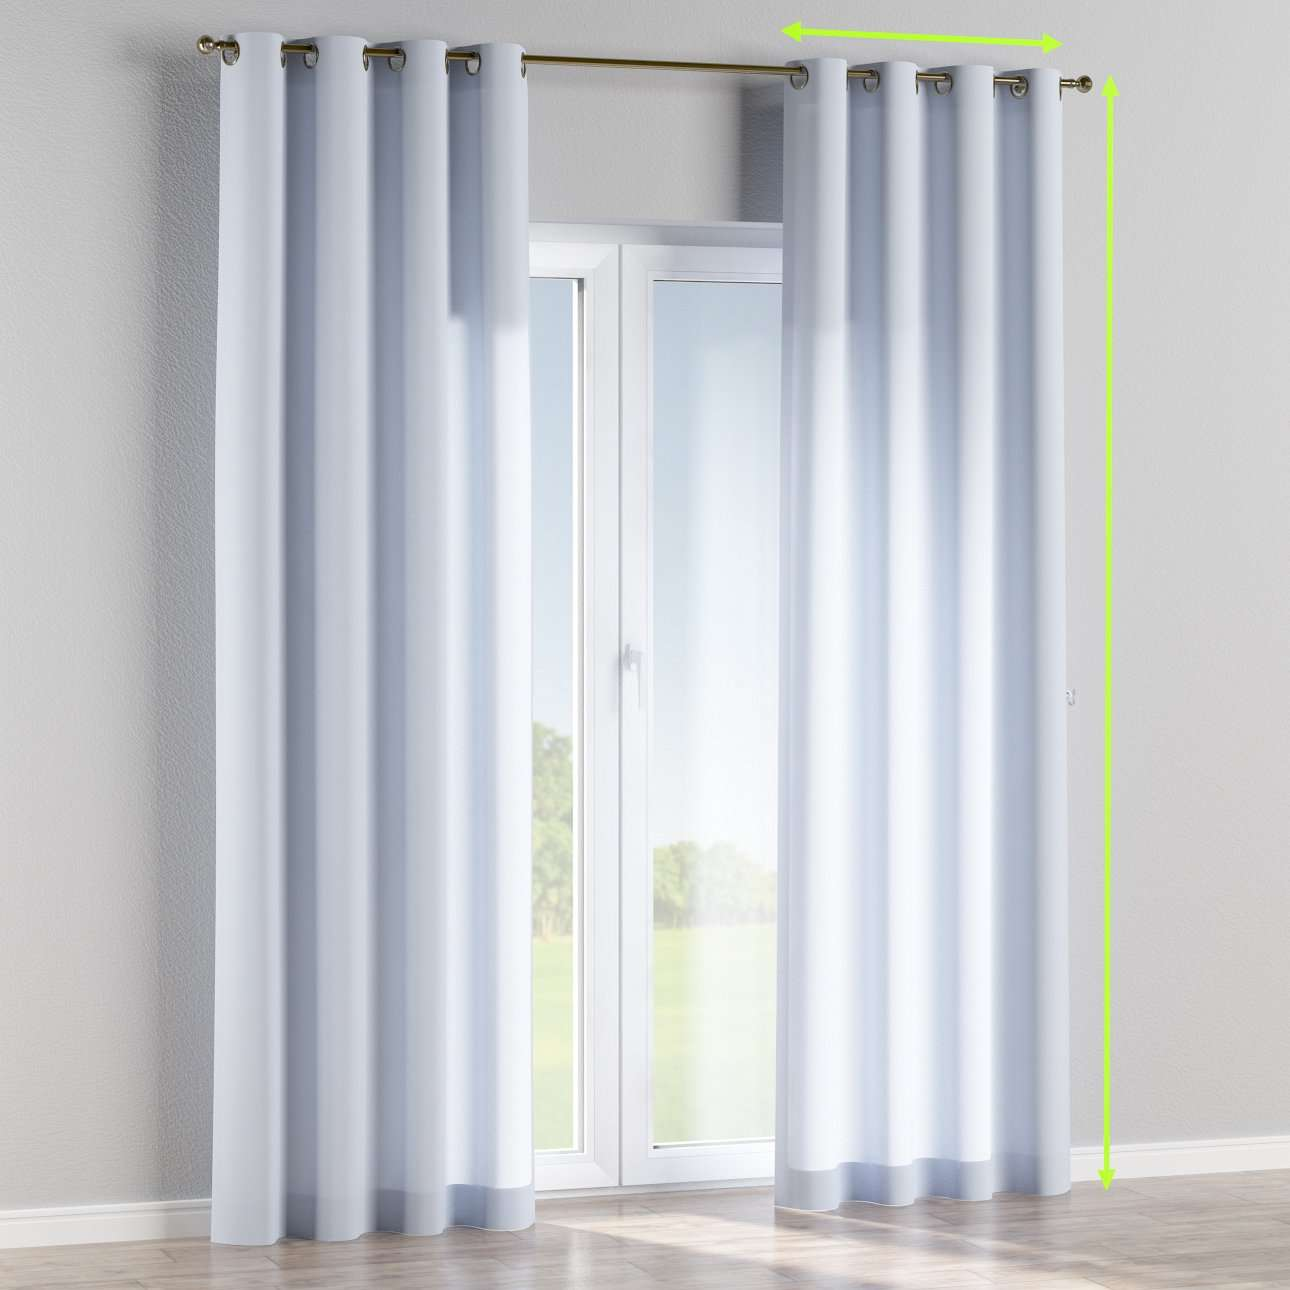 Eyelet curtains in collection Loneta , fabric: 133-35